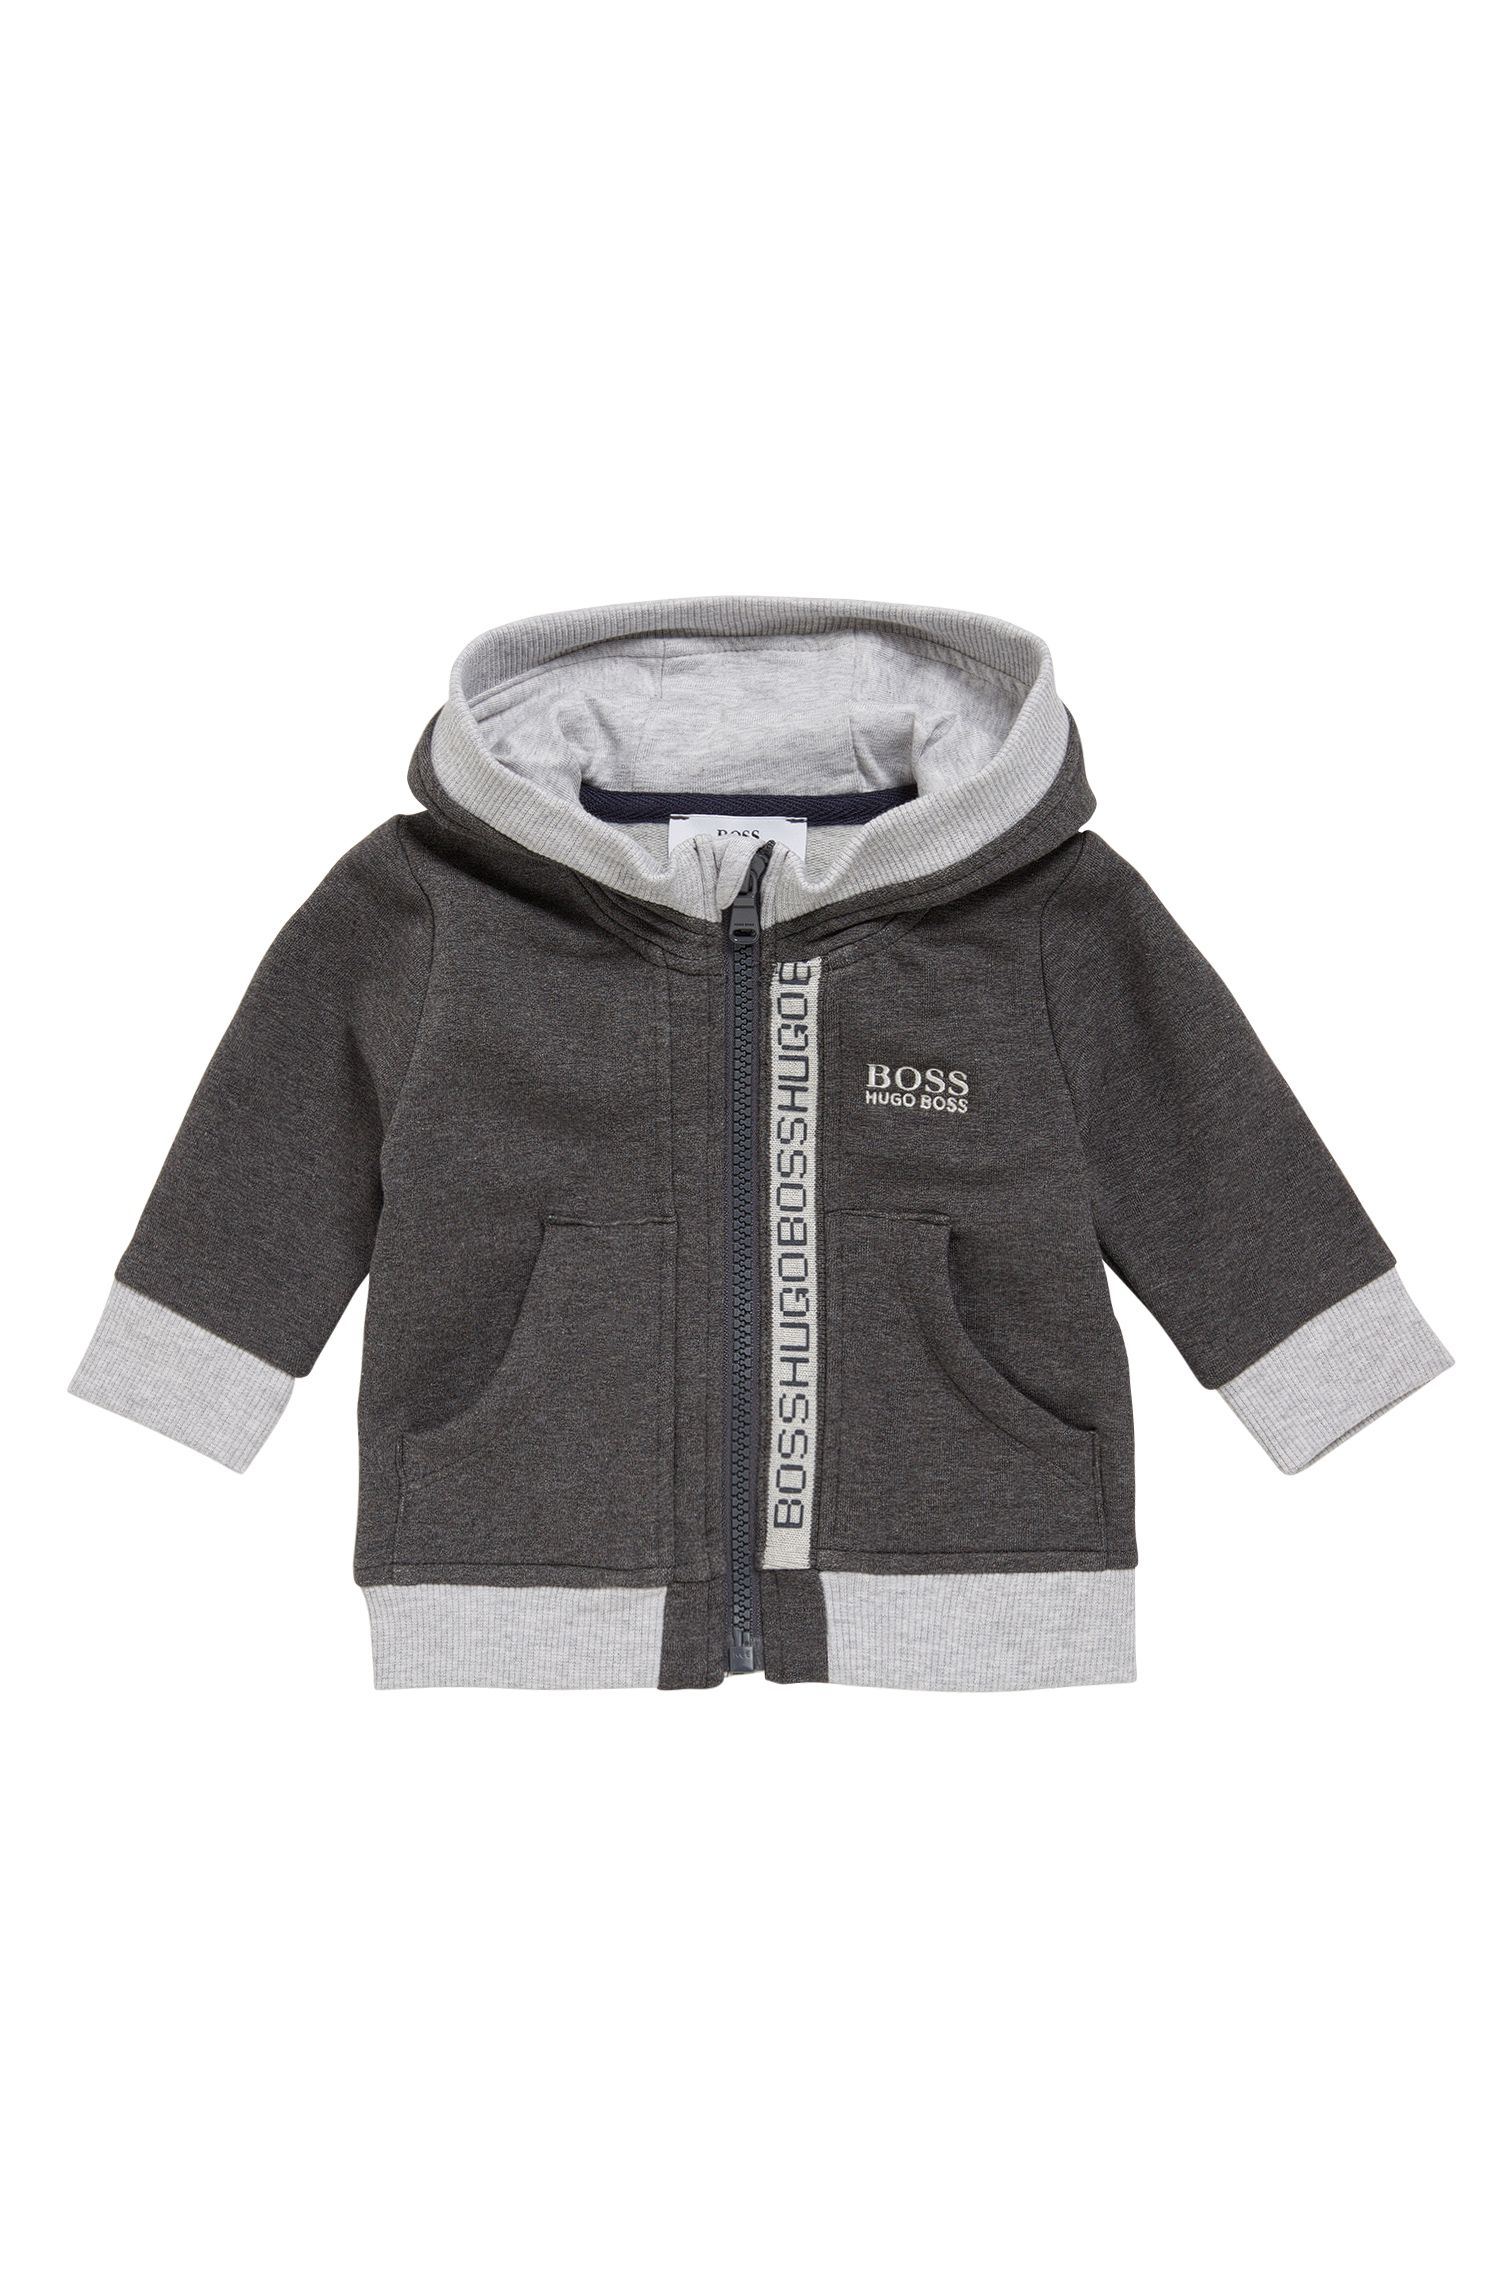 Kids' hooded jacket in stretch cotton blend: 'J05518'